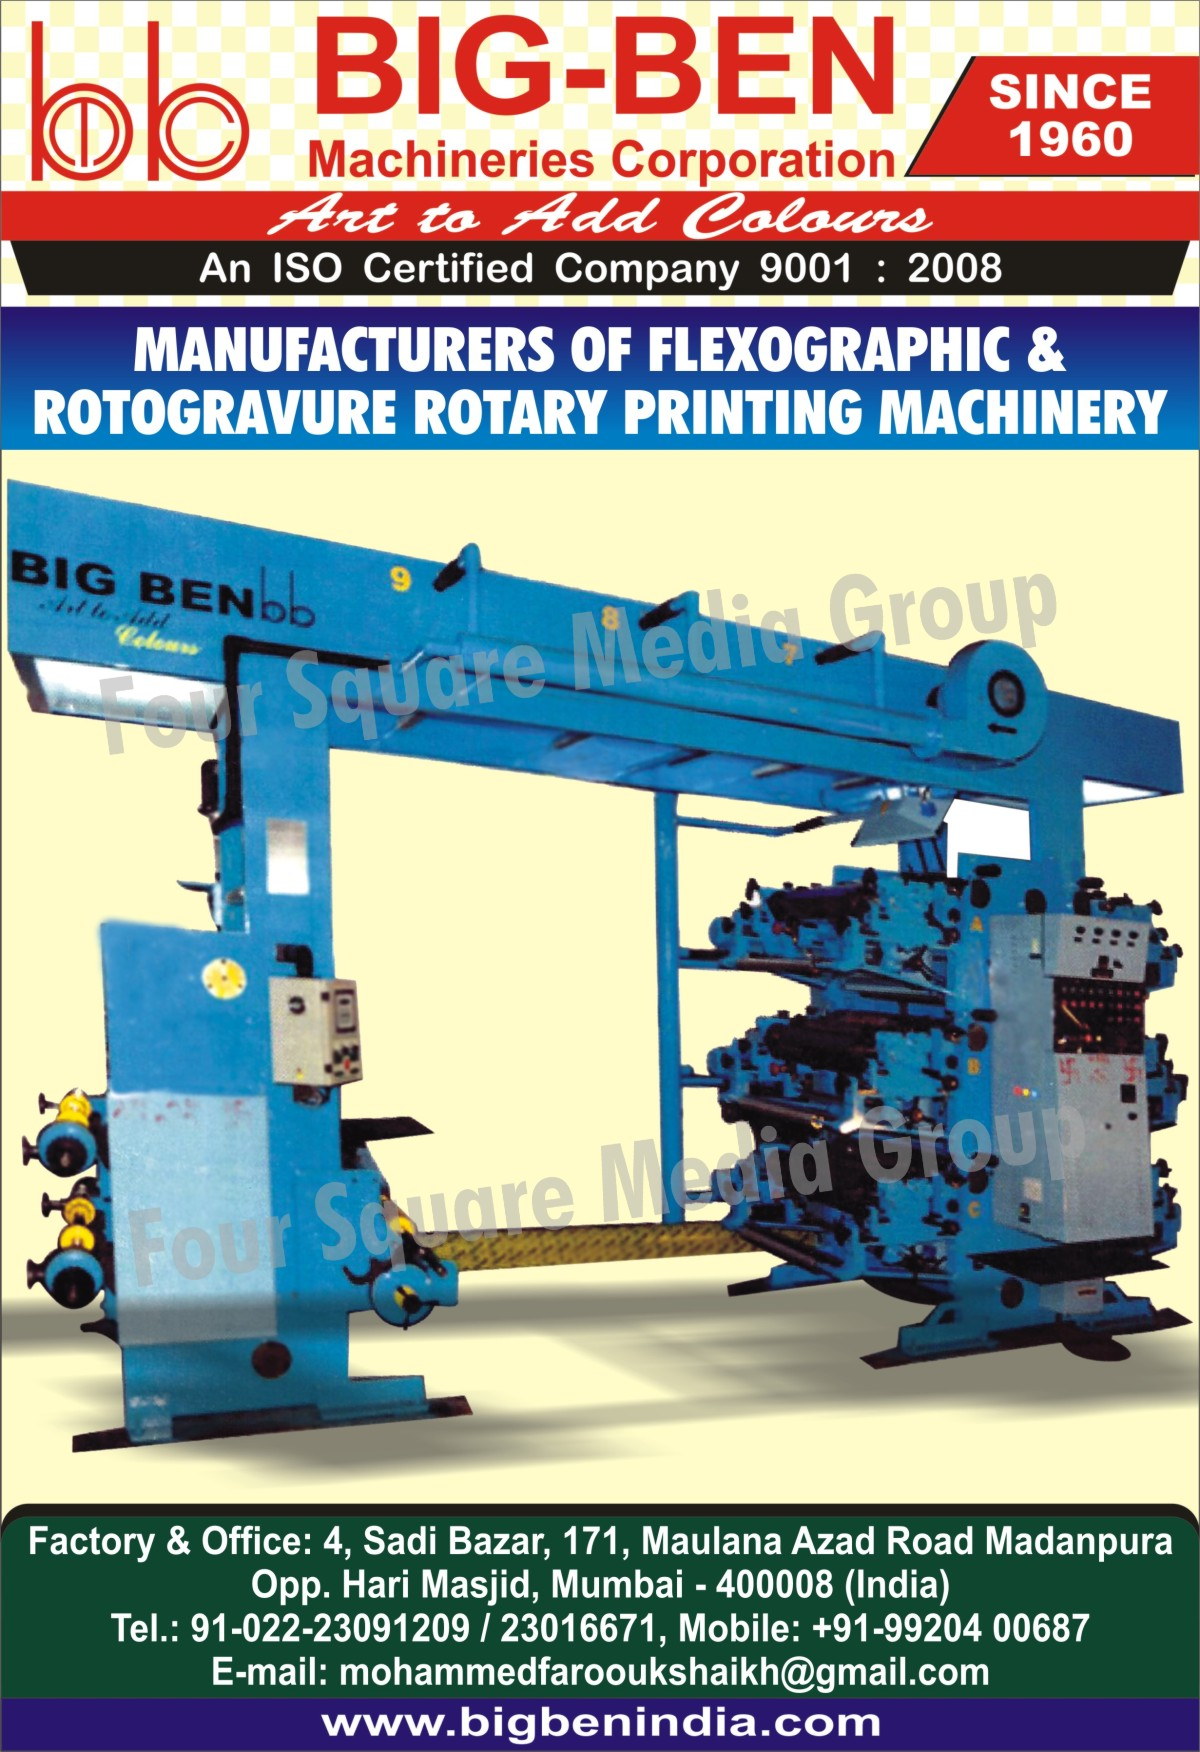 Flexographic Rotary Printing Machinery, Rotogravure Rotary Printing Machinery